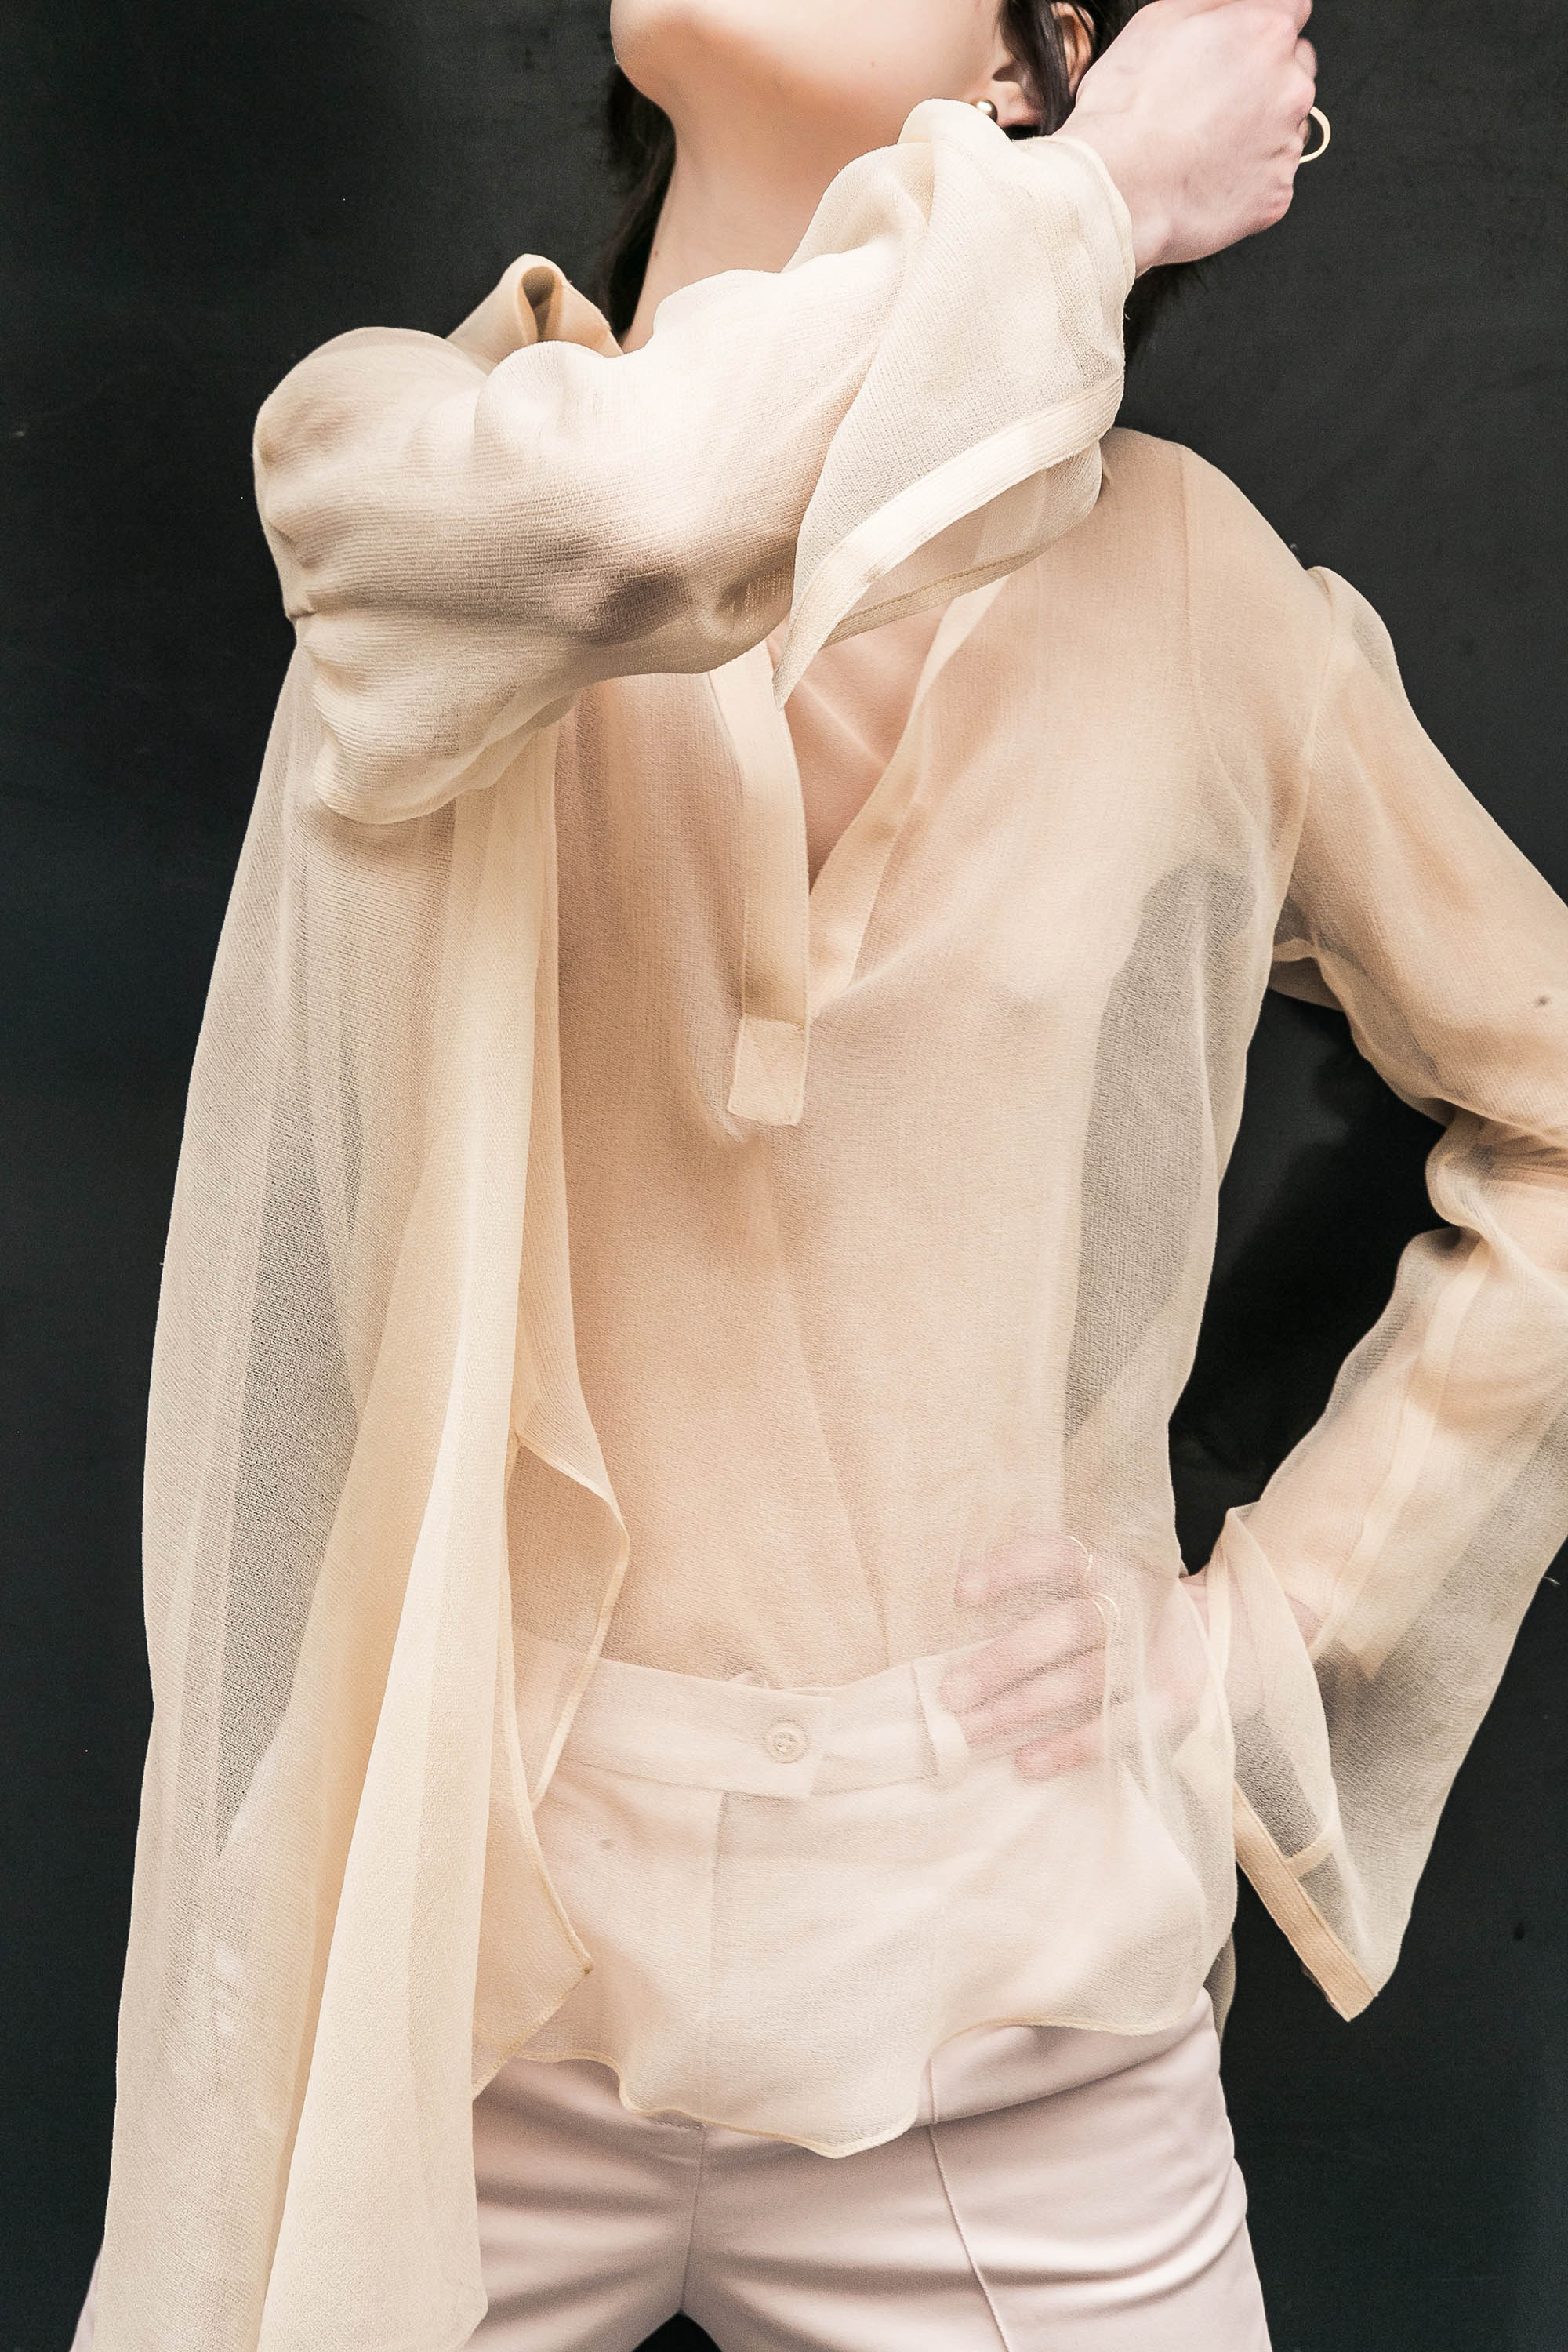 adel-astree-blouse-driss-poudre-1